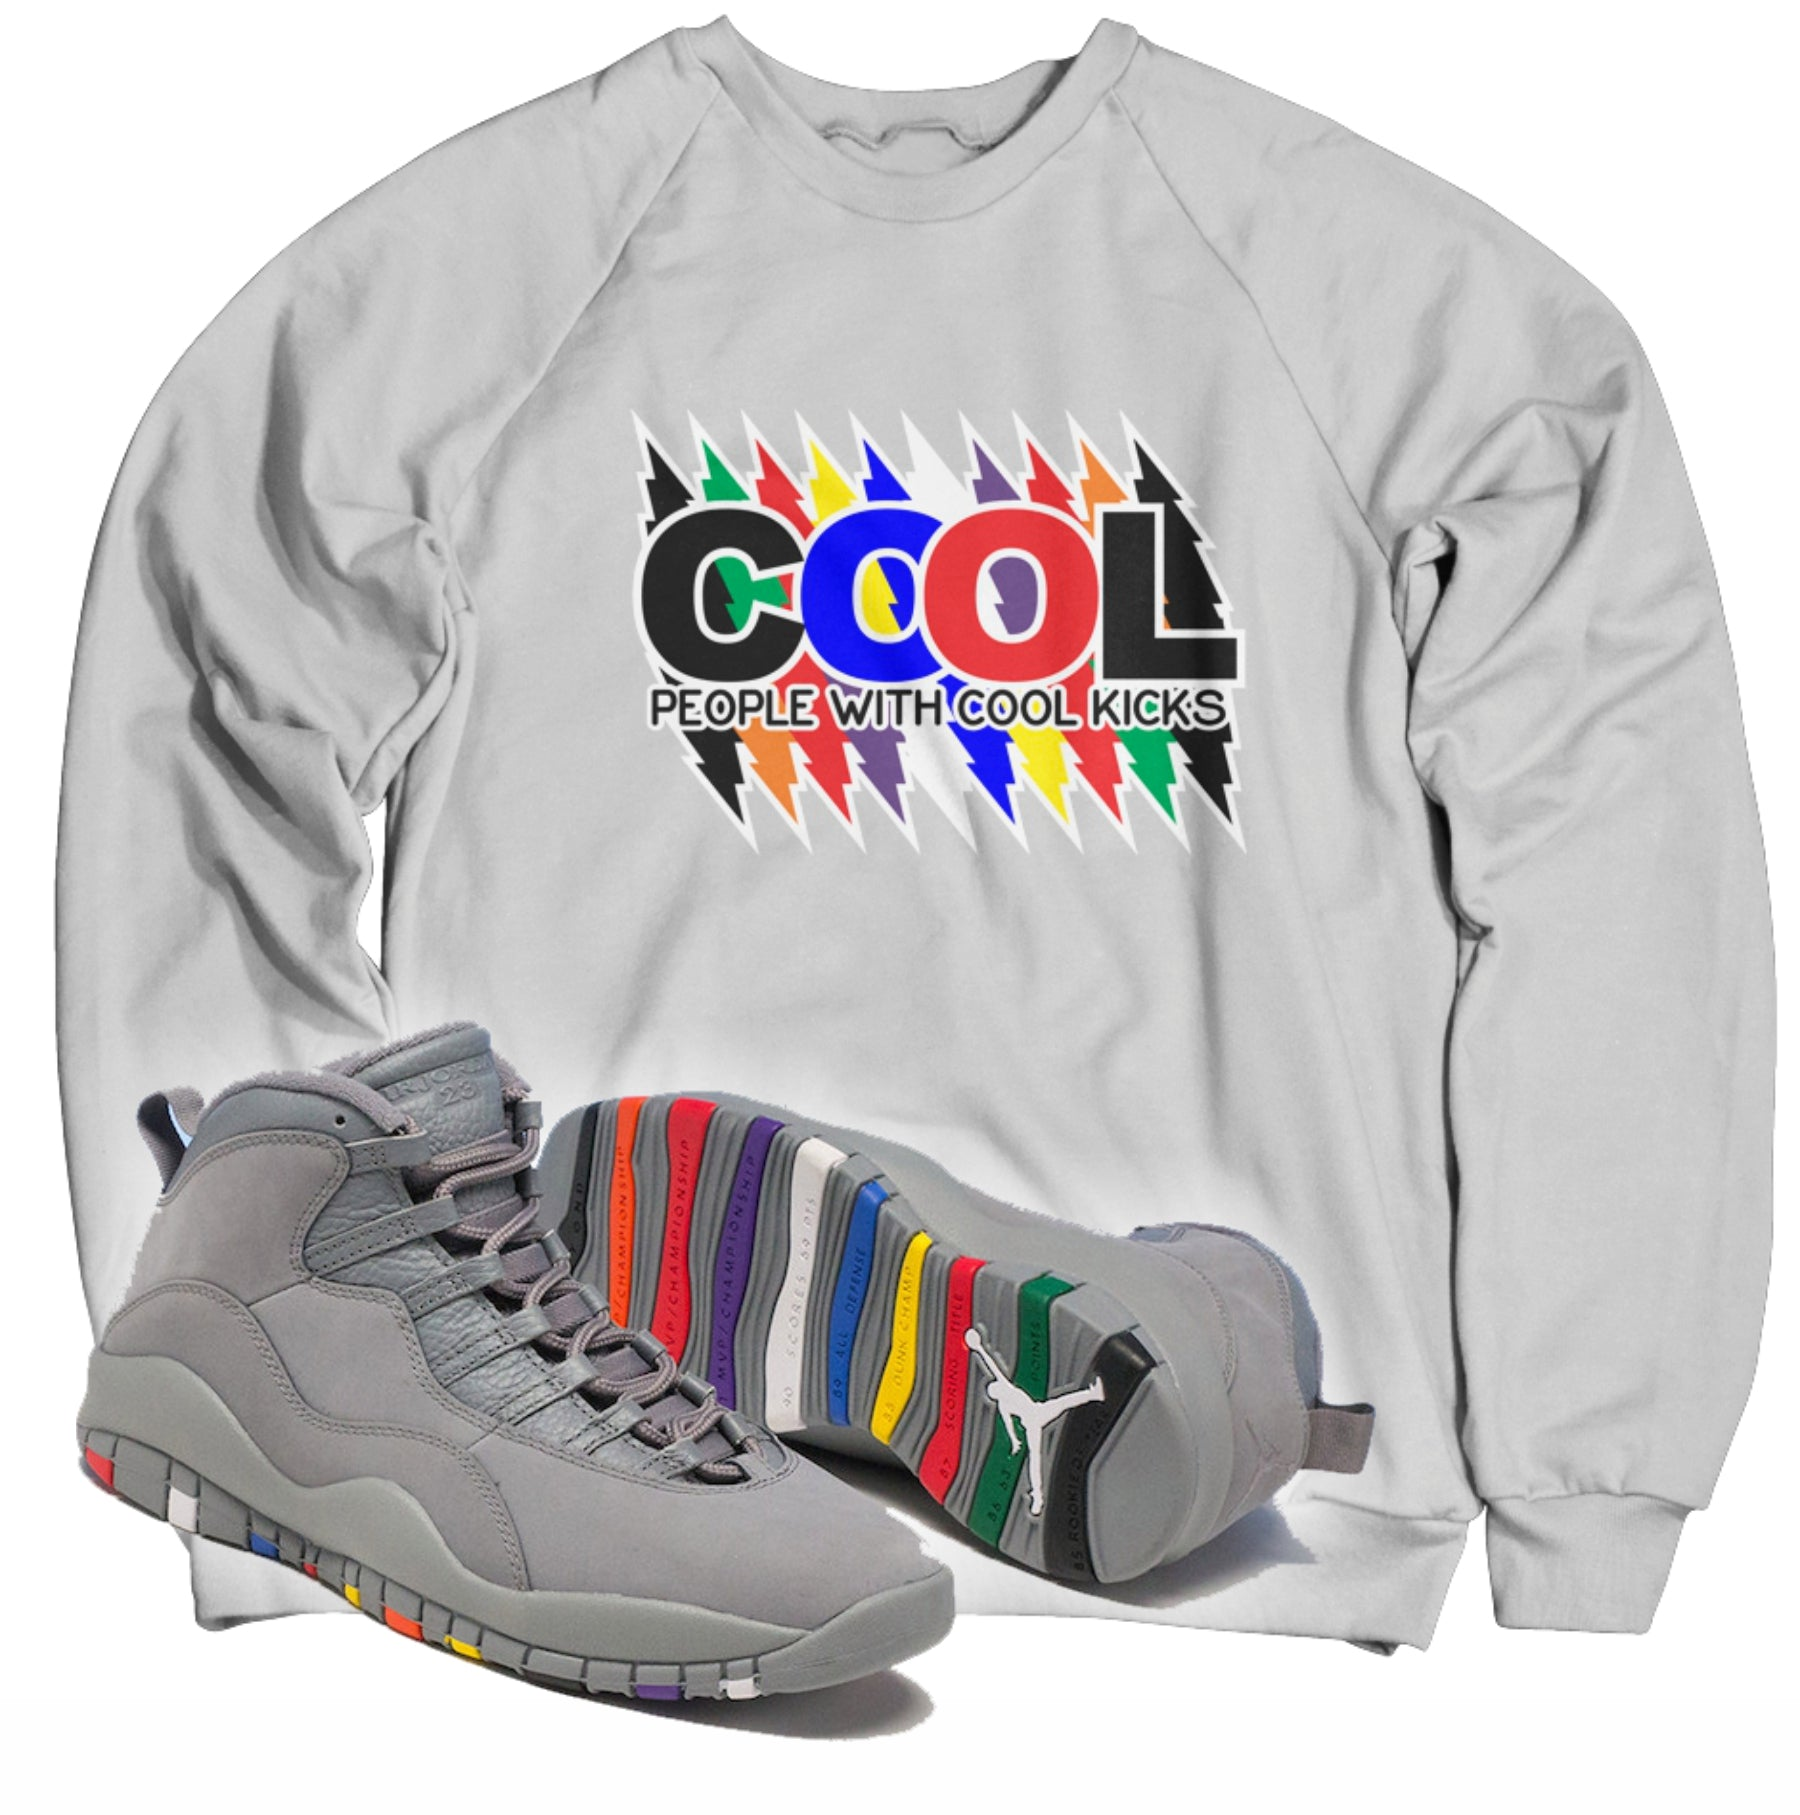 Cool People With Cool Kicks Tee (Designed to match Air Jordan 10 Cool Grey Sneakers)